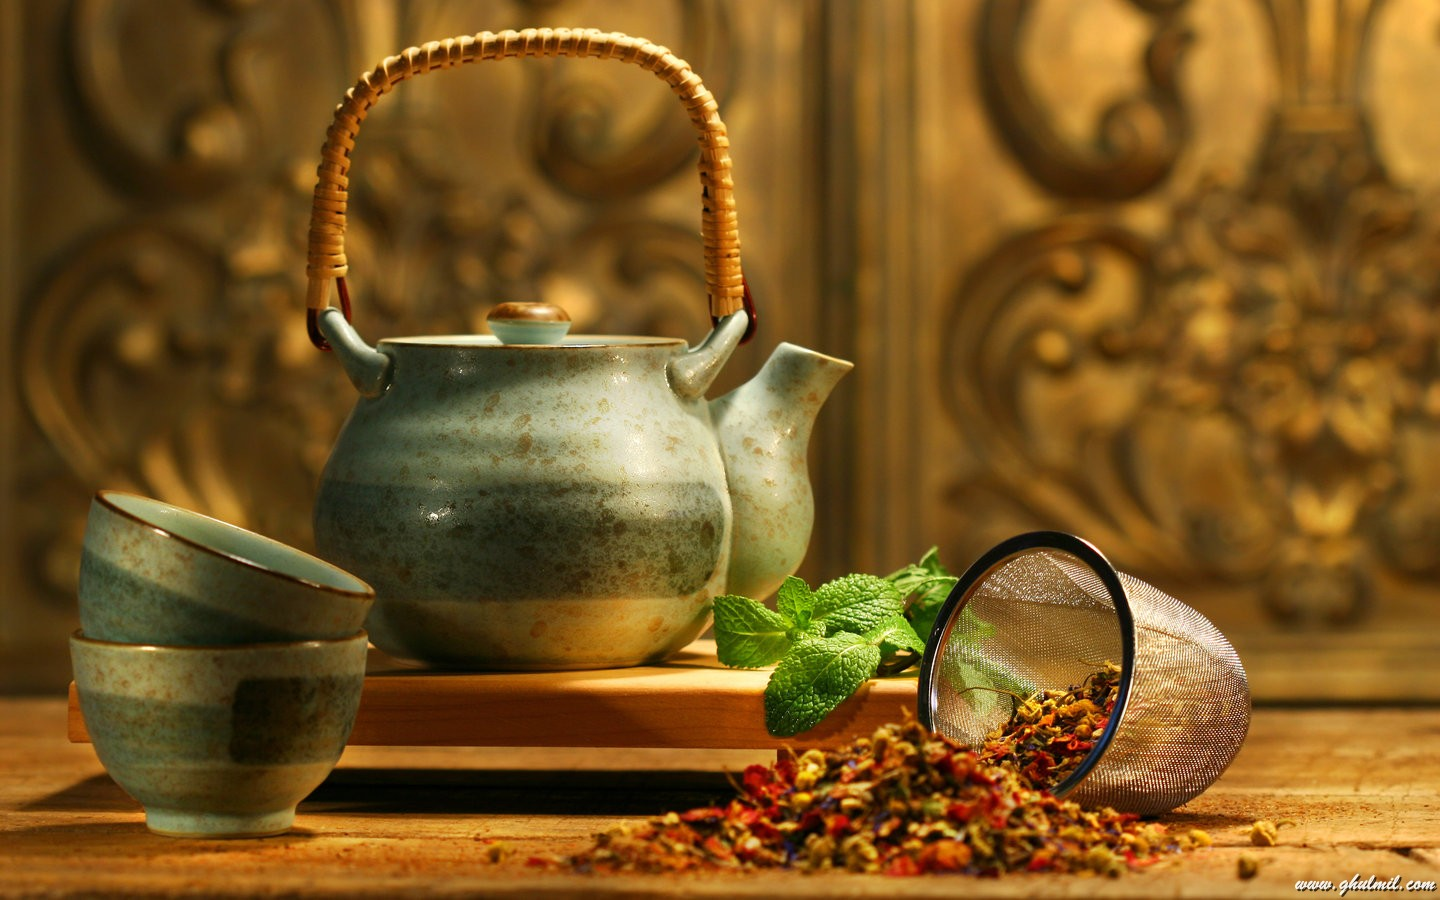 Beautiful Chinese Cultural Kettle Desktop Wallpaper E Entertainment 1440x900